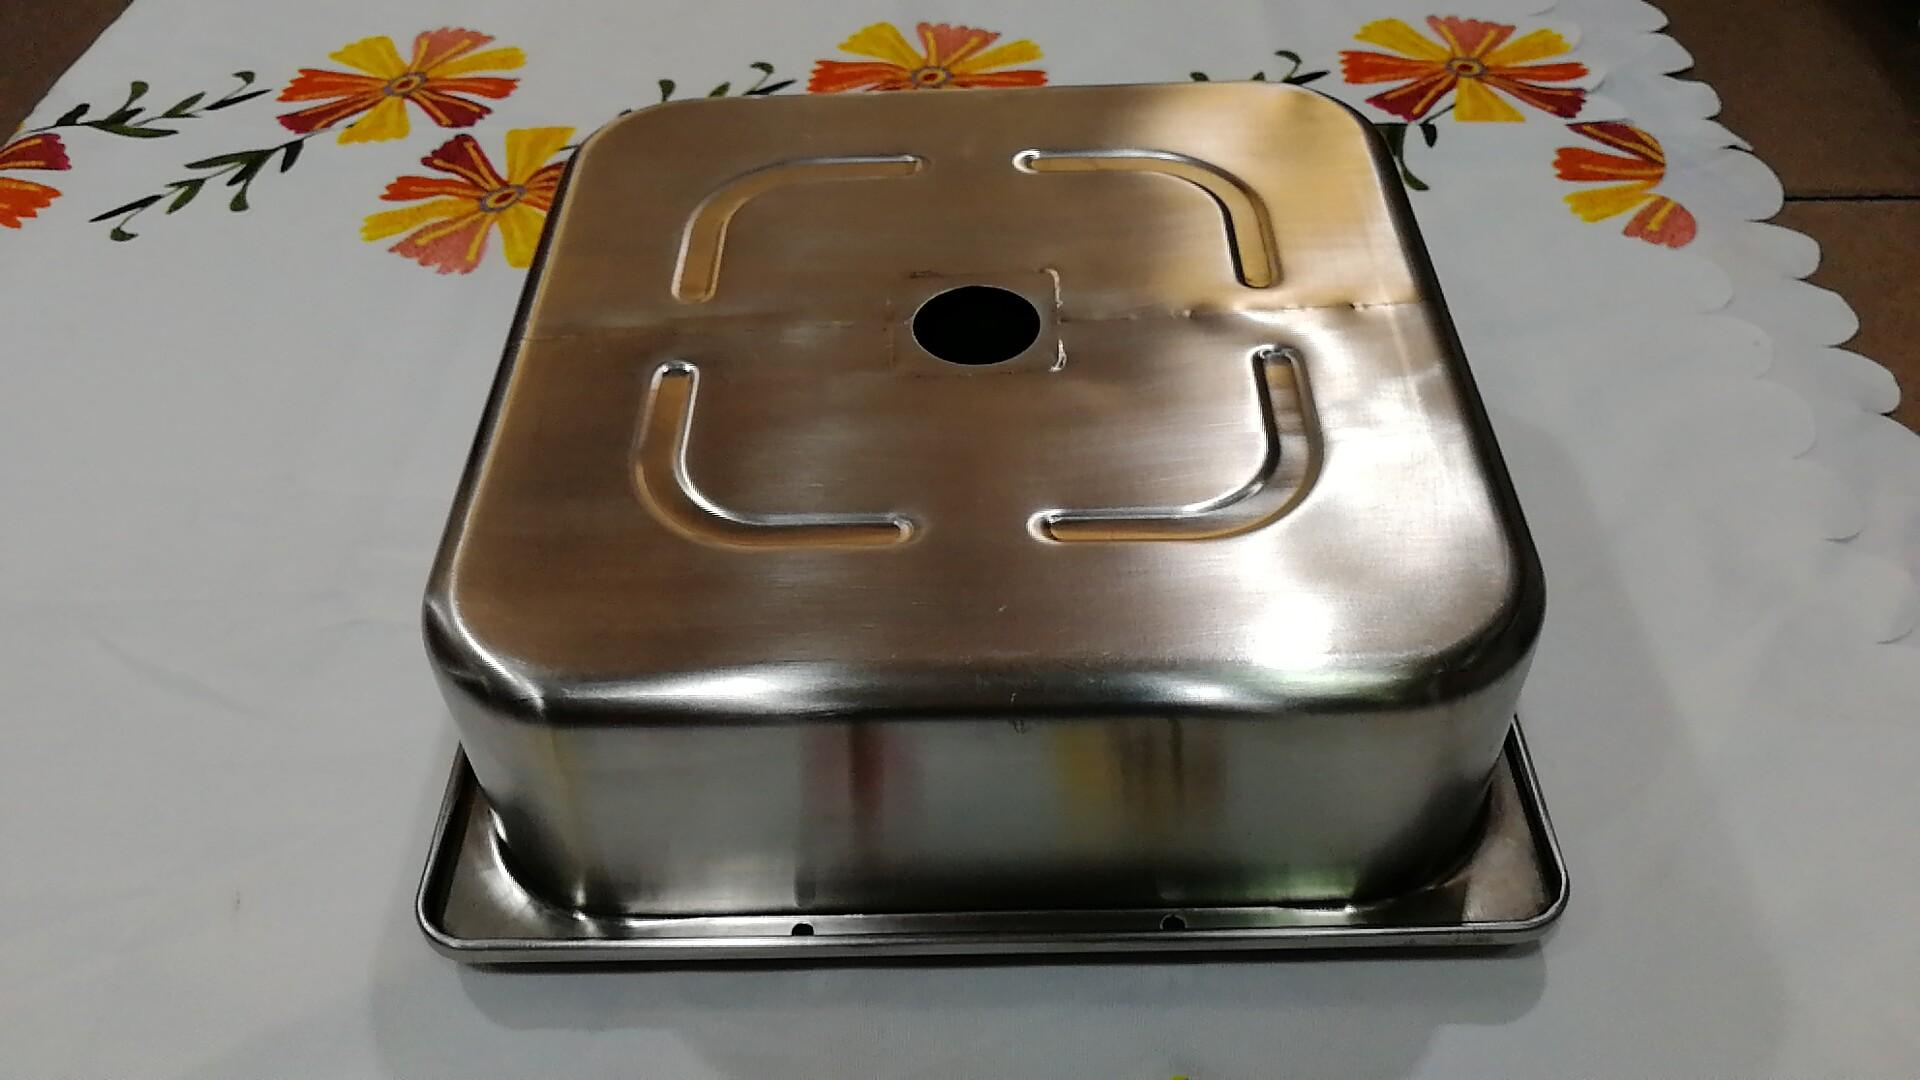 Cookerware s/s Pan with Center Column & Divider into 2 Grids Available Gas Stove 2